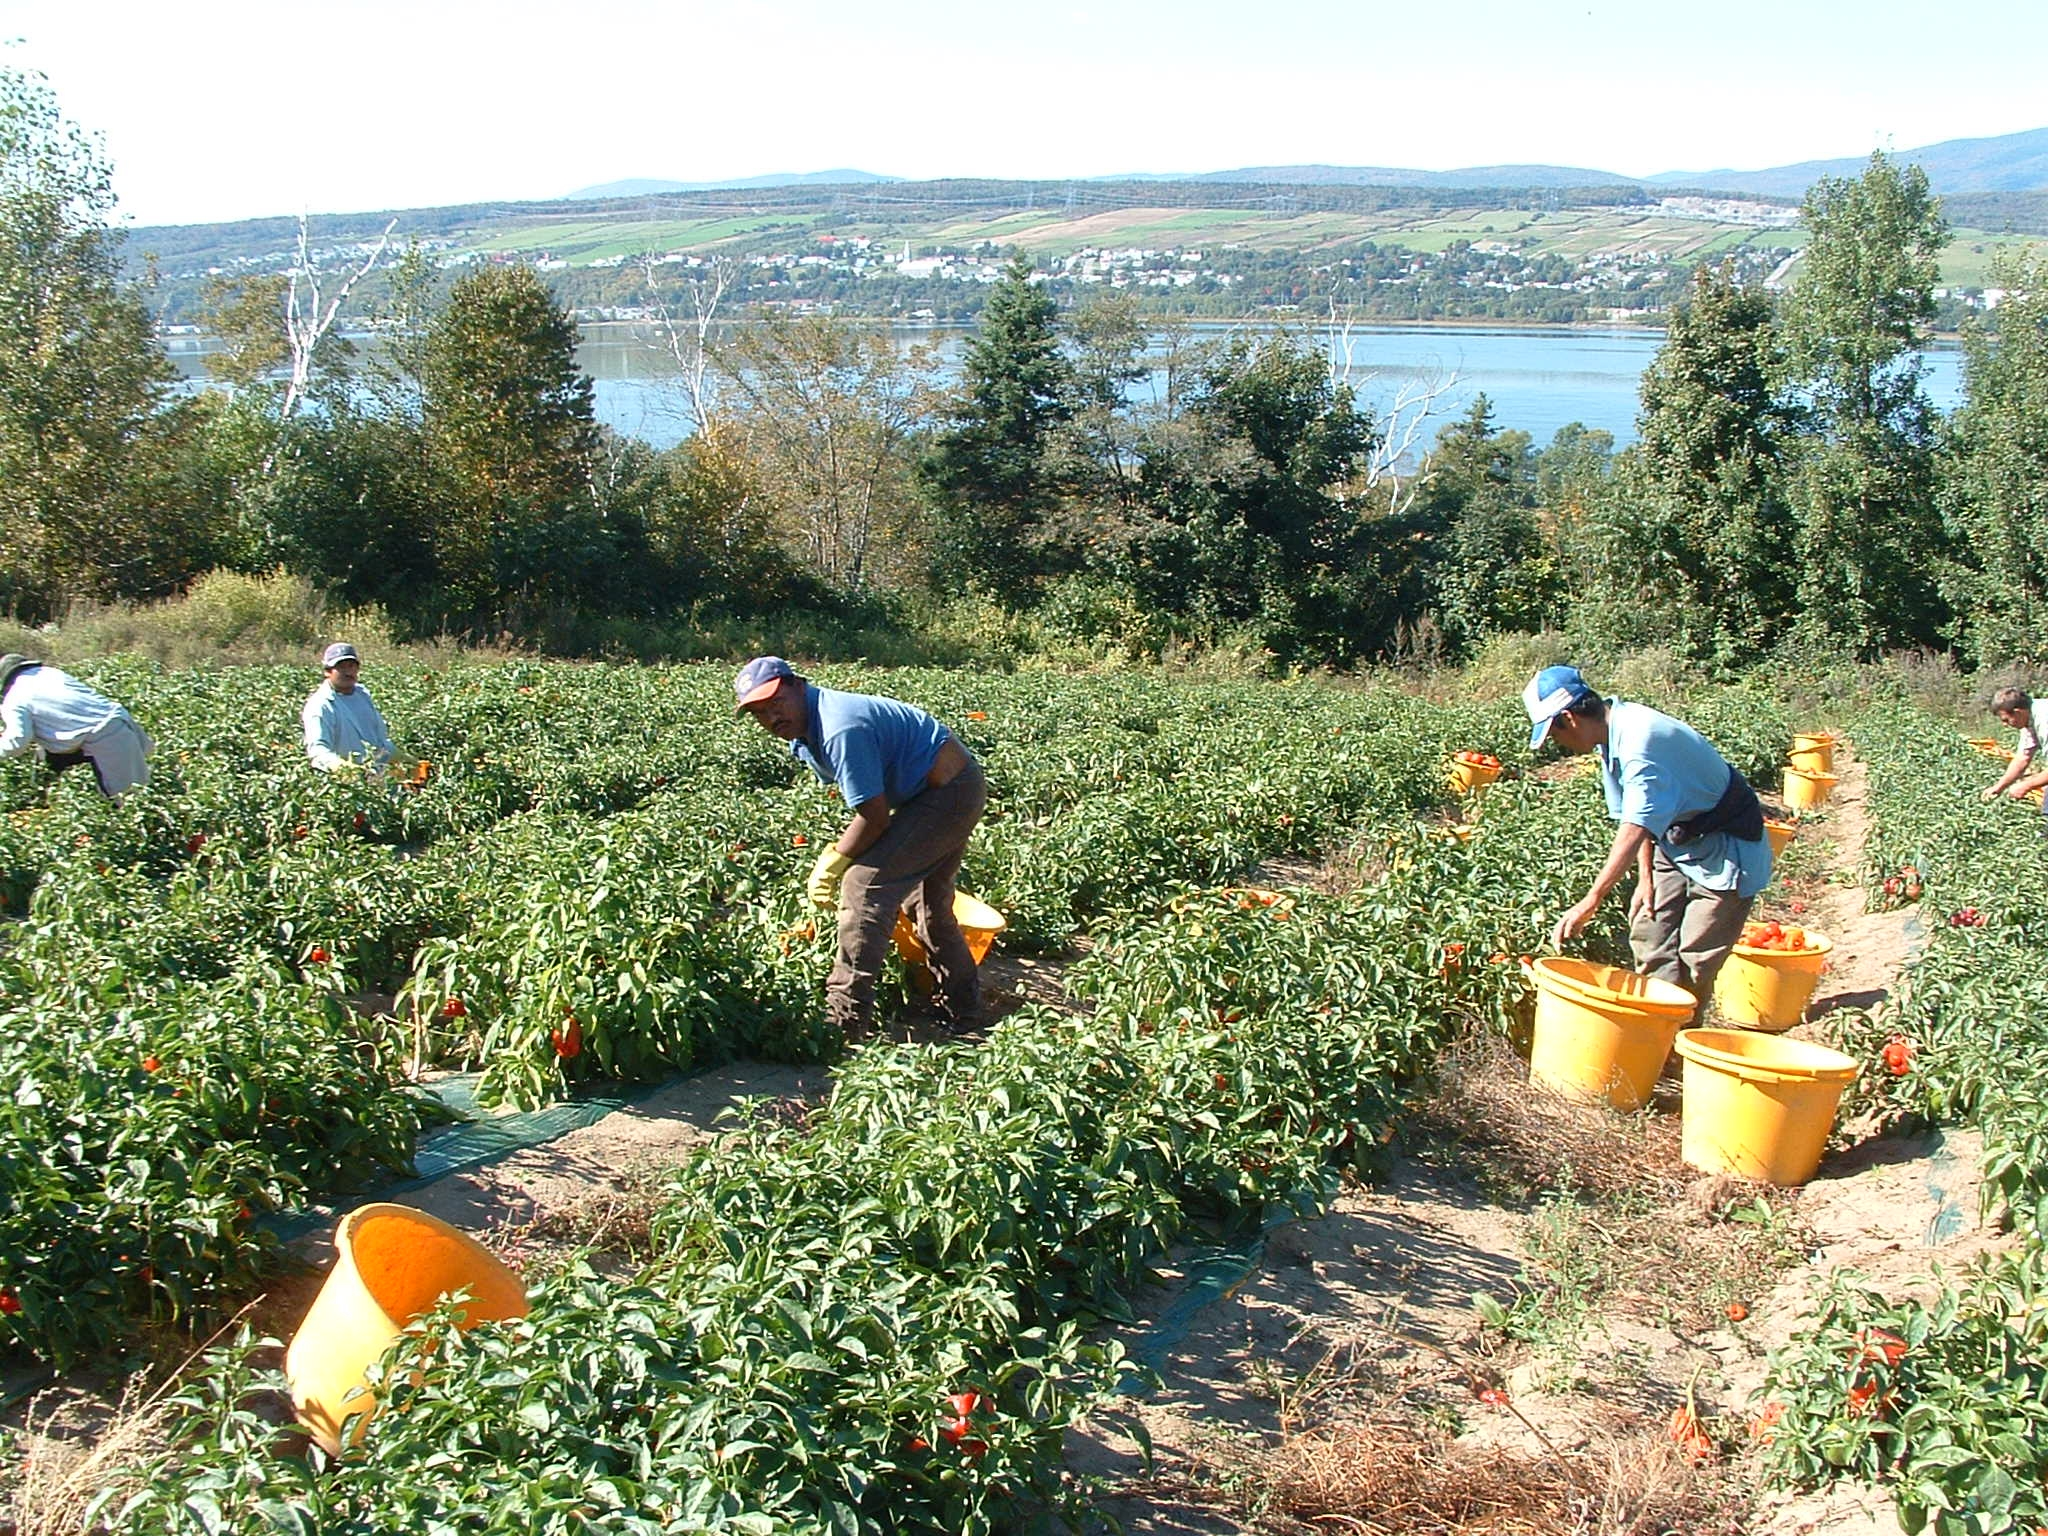 Seasonal agricultural workers harvest tomatoes in a field.